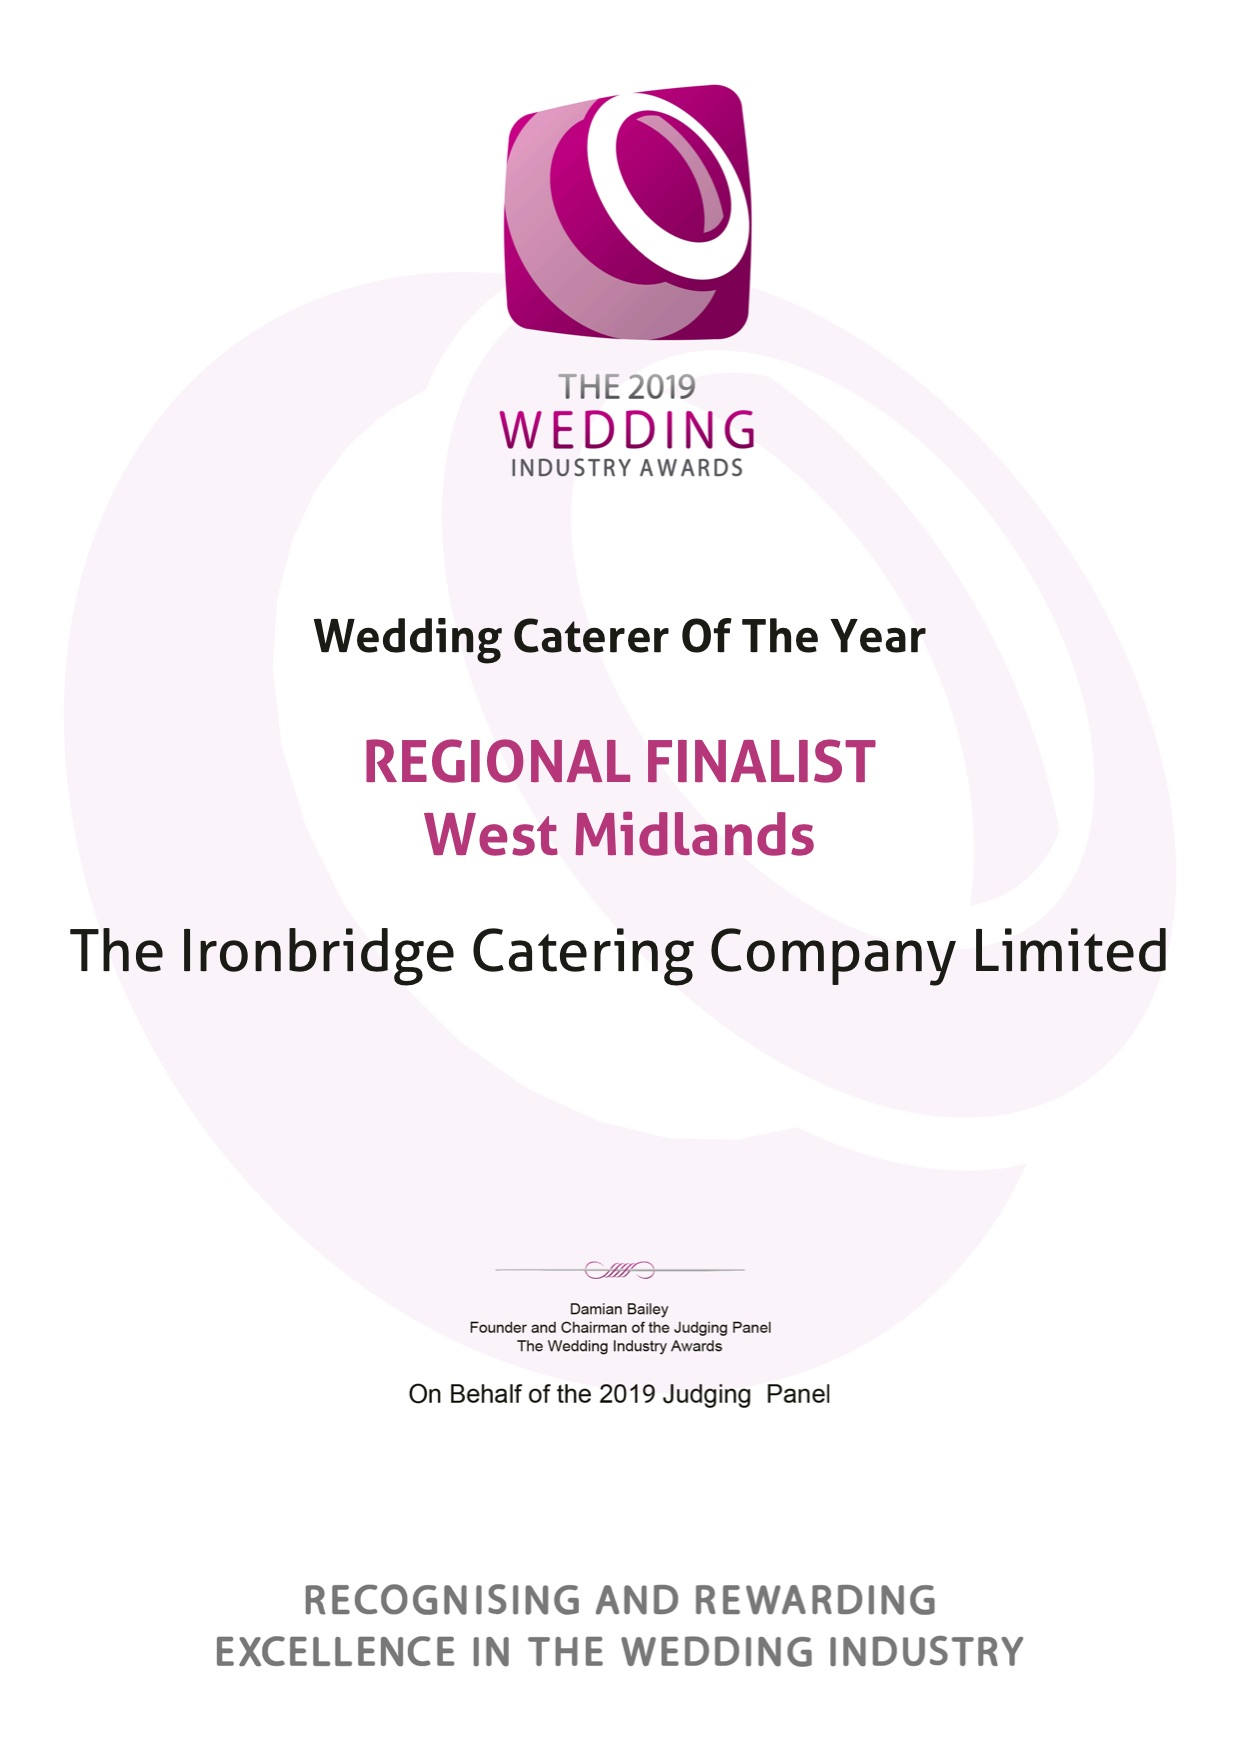 the-ironbridge-catering-company-limited-regional-finalist-west-midlands.jpg